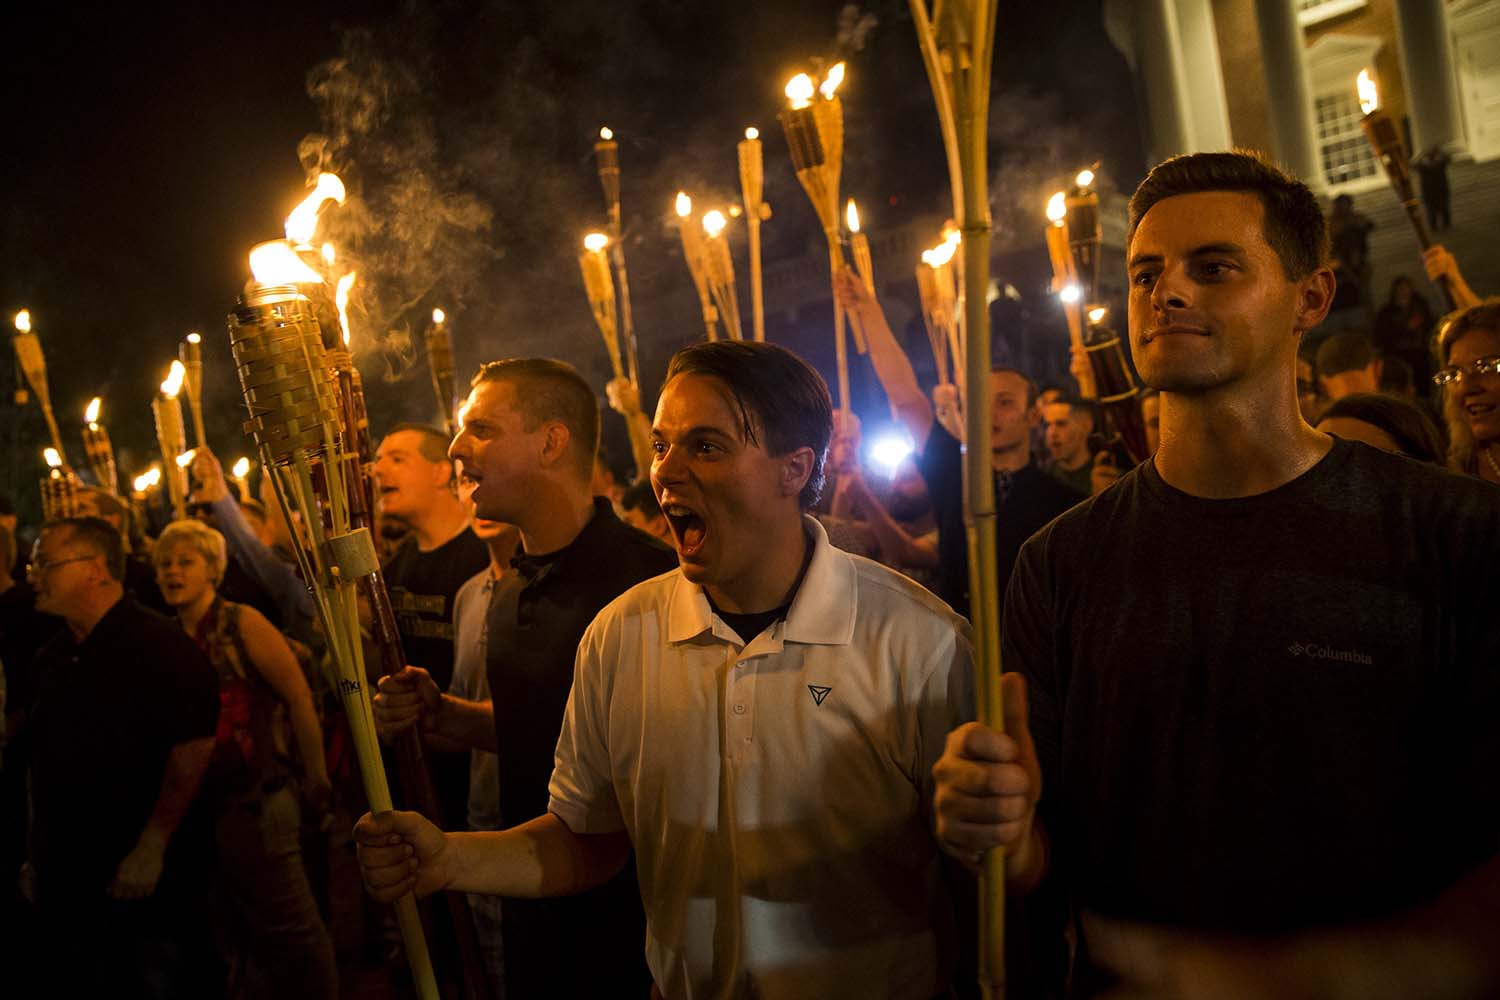 https://foreignpolicy.com/wp-content/uploads/2019/10/Fascism-Nazis-white-supremacist-Charlottesville-GettyImages-830617832.jpg